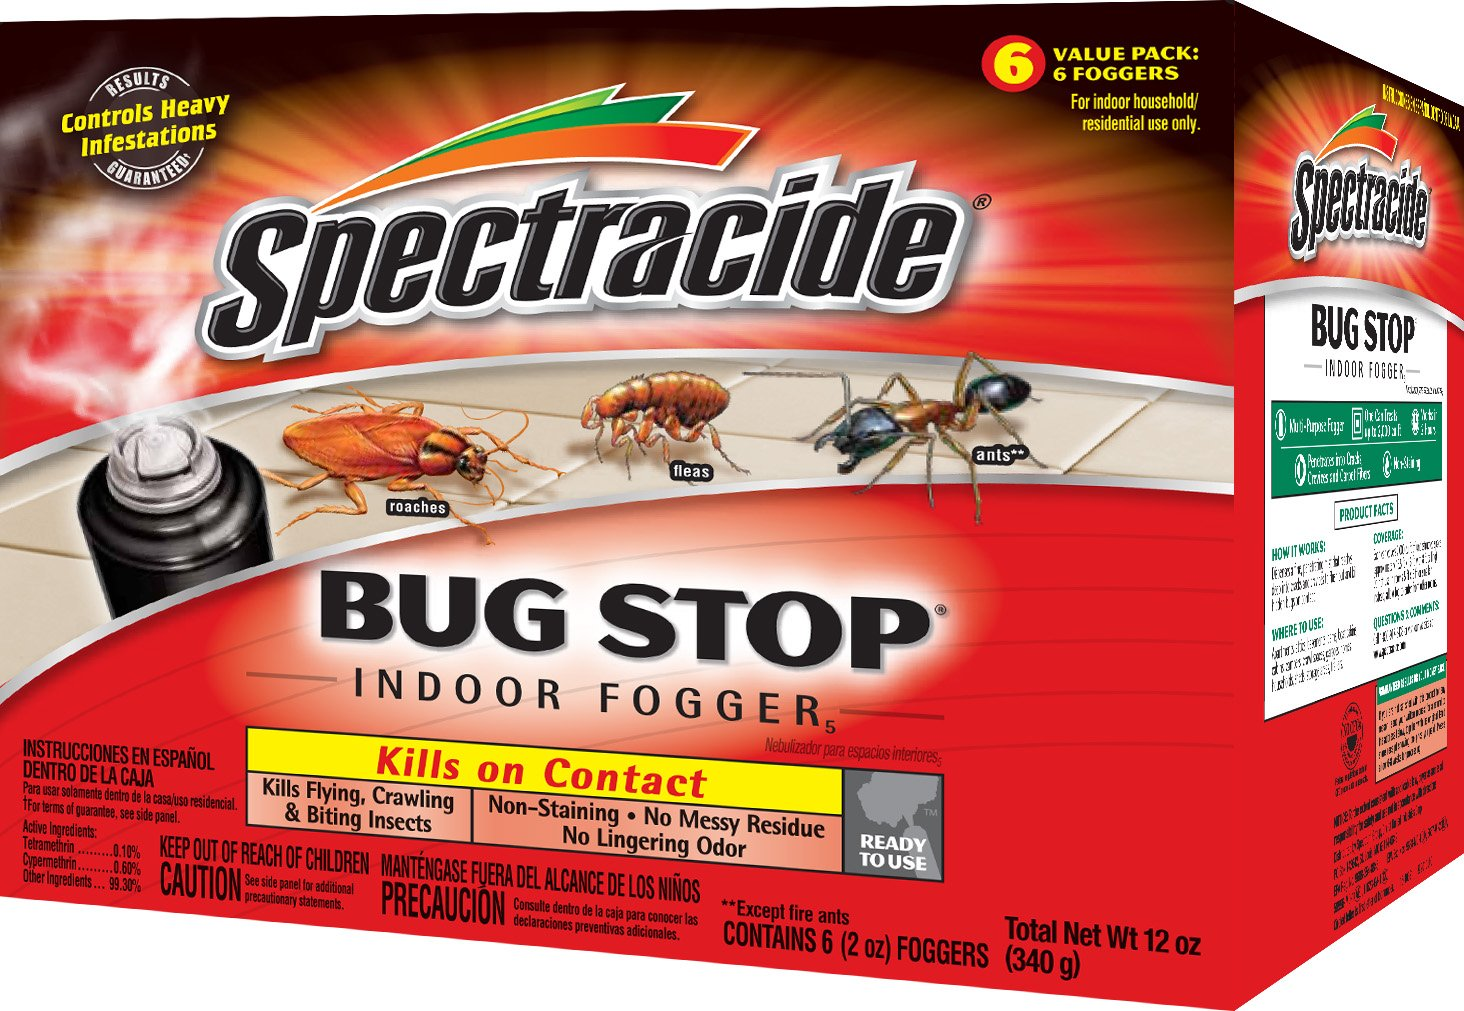 Spectracide Bug Stop Indoor Fogger5 (HG-67759) - Pack of 4 (6 Foggers in each pack)